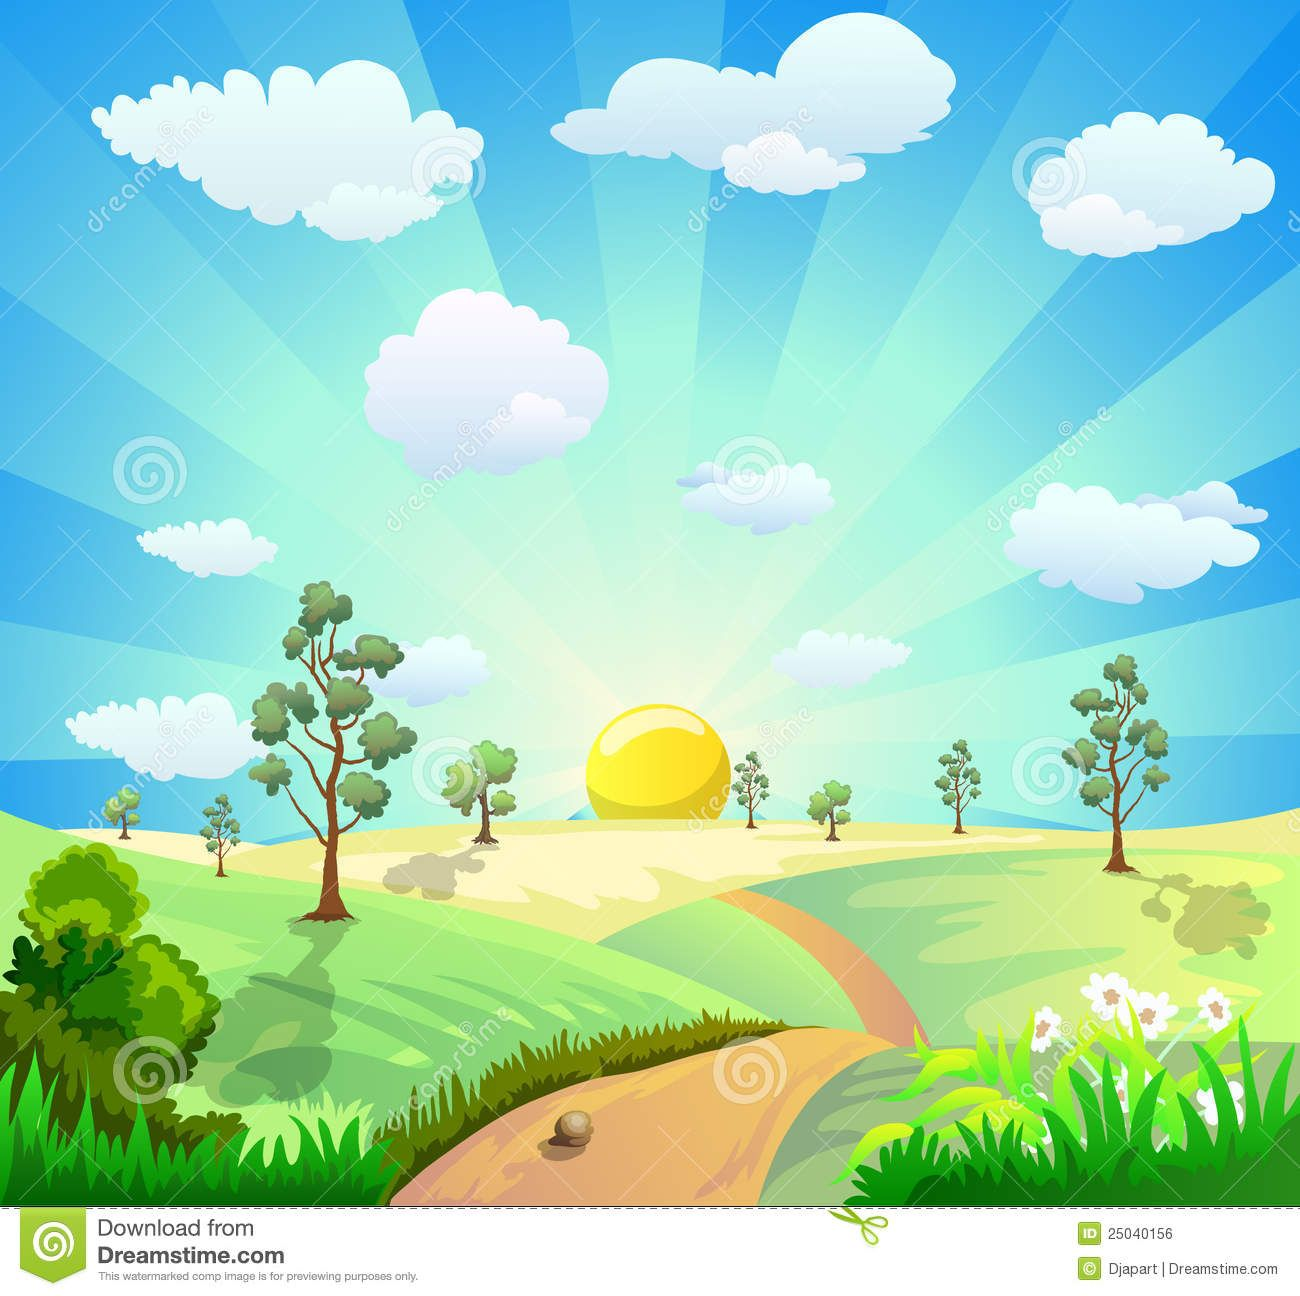 Clipart garden background hd clipart transparent download Cartoon Landscape Background Royalty Free Stock Image - Image ... clipart transparent download